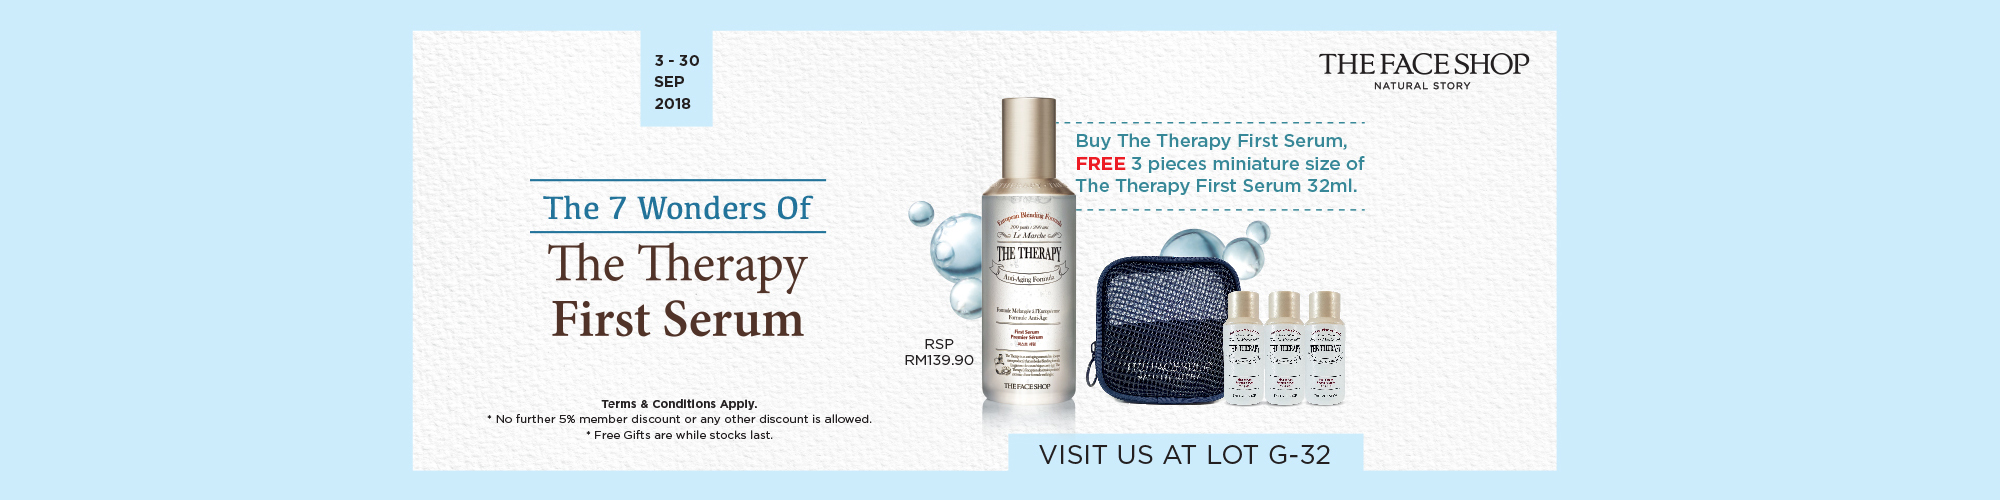 km_website_slider_thefaceshop_serum